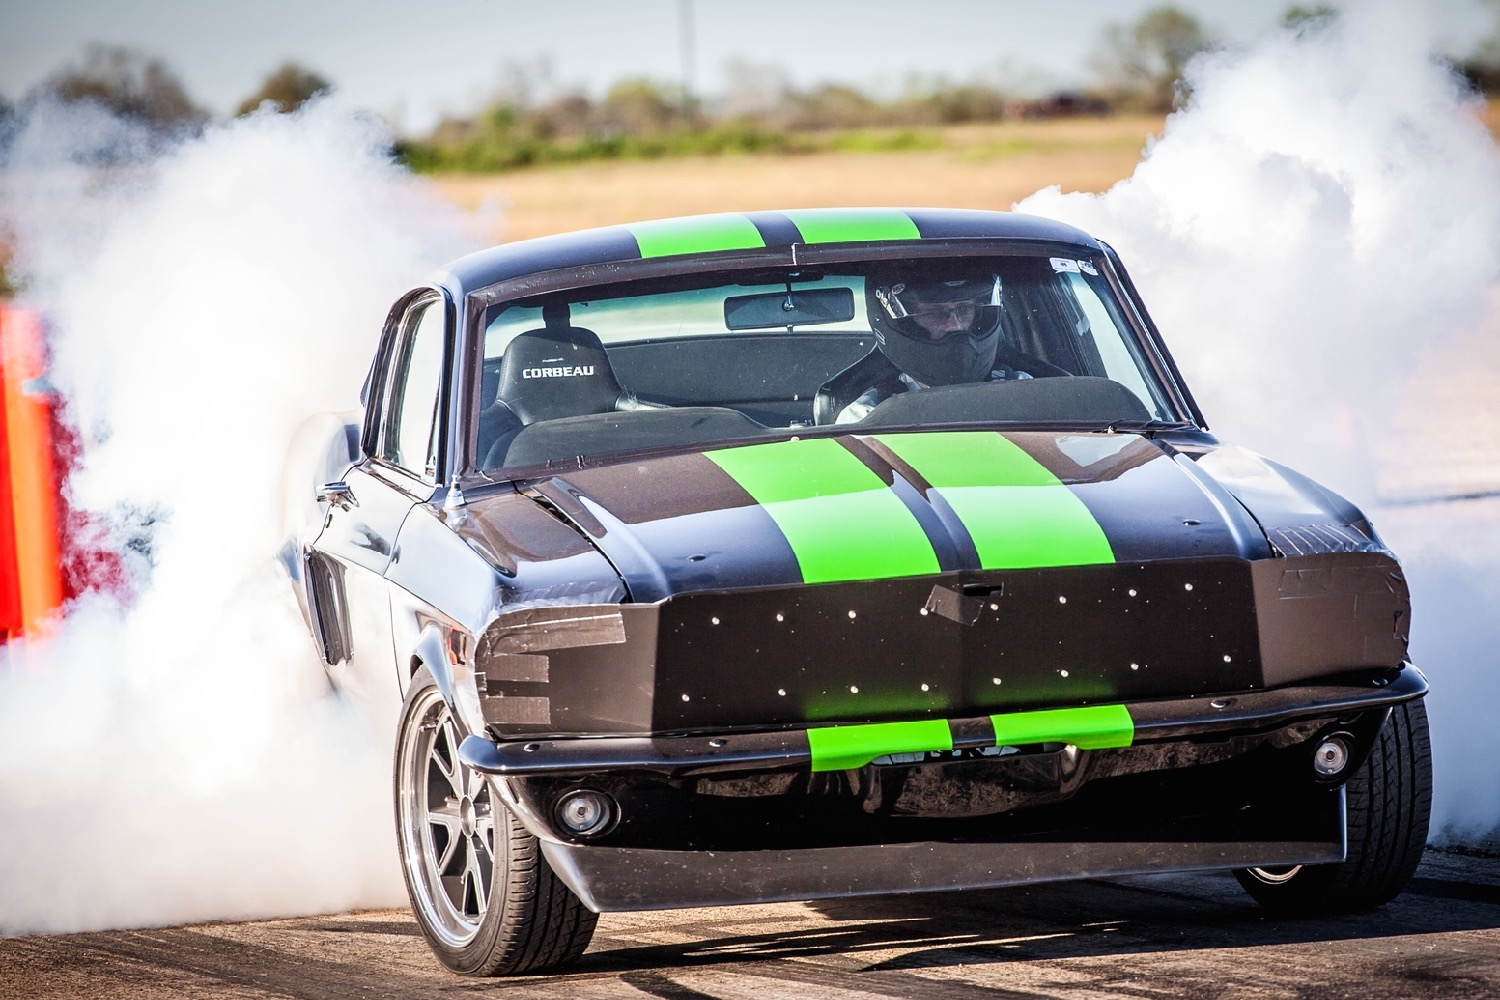 Ford mustang electric drag car does 0 to 60 mph under 2 seconds targets 200 mph